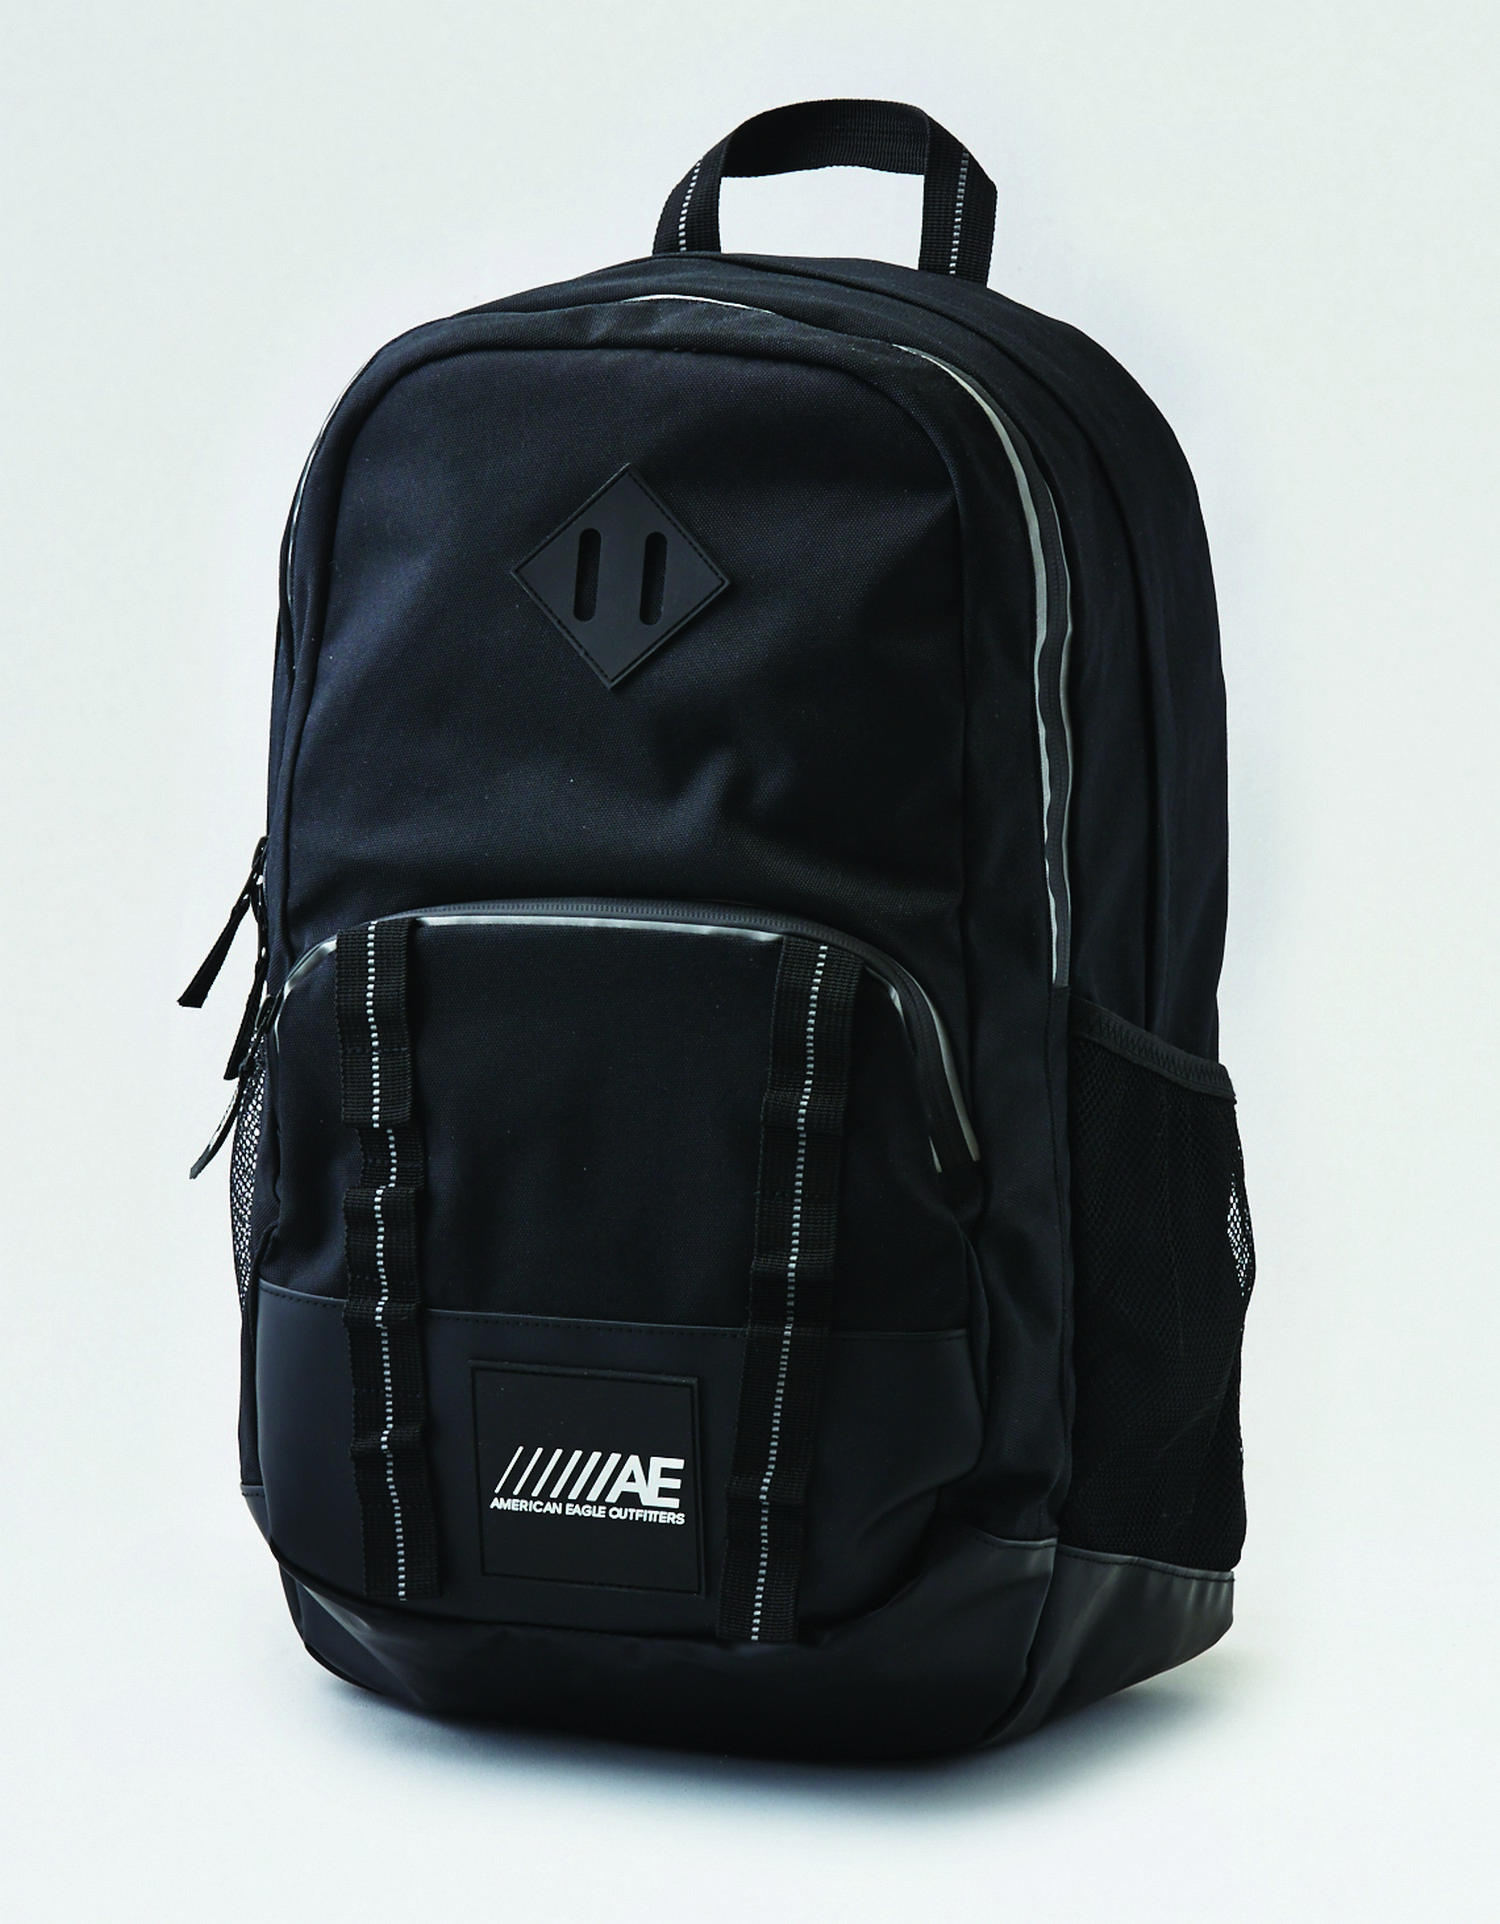 AE - M - Accessories - SPORT BAG - Black - triple pocket - reflective taping around zipper - black rubber bottom - ////AE AL Tracked